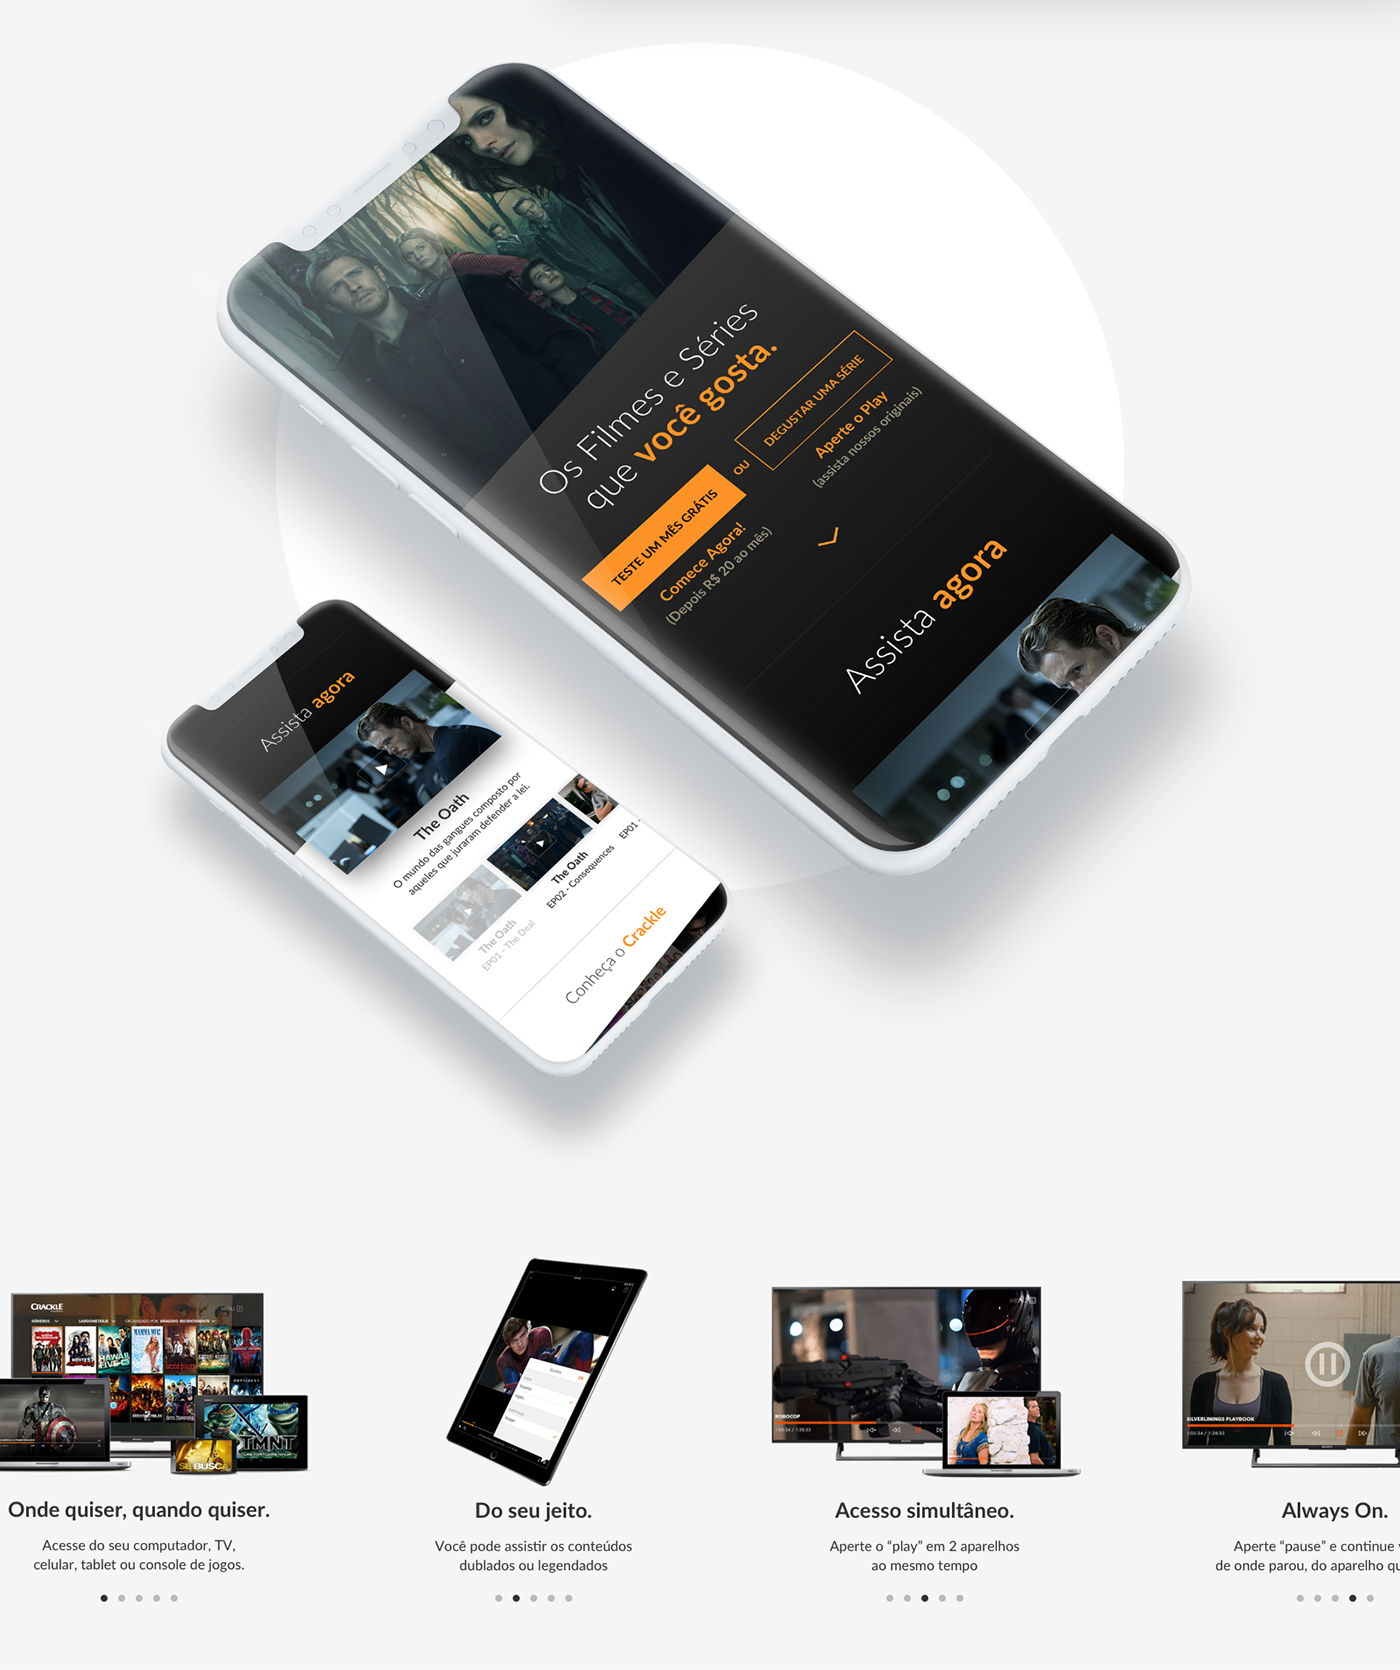 crackle Sony Streaming grids Responsive mobile UI/UX Interface user experience user interface